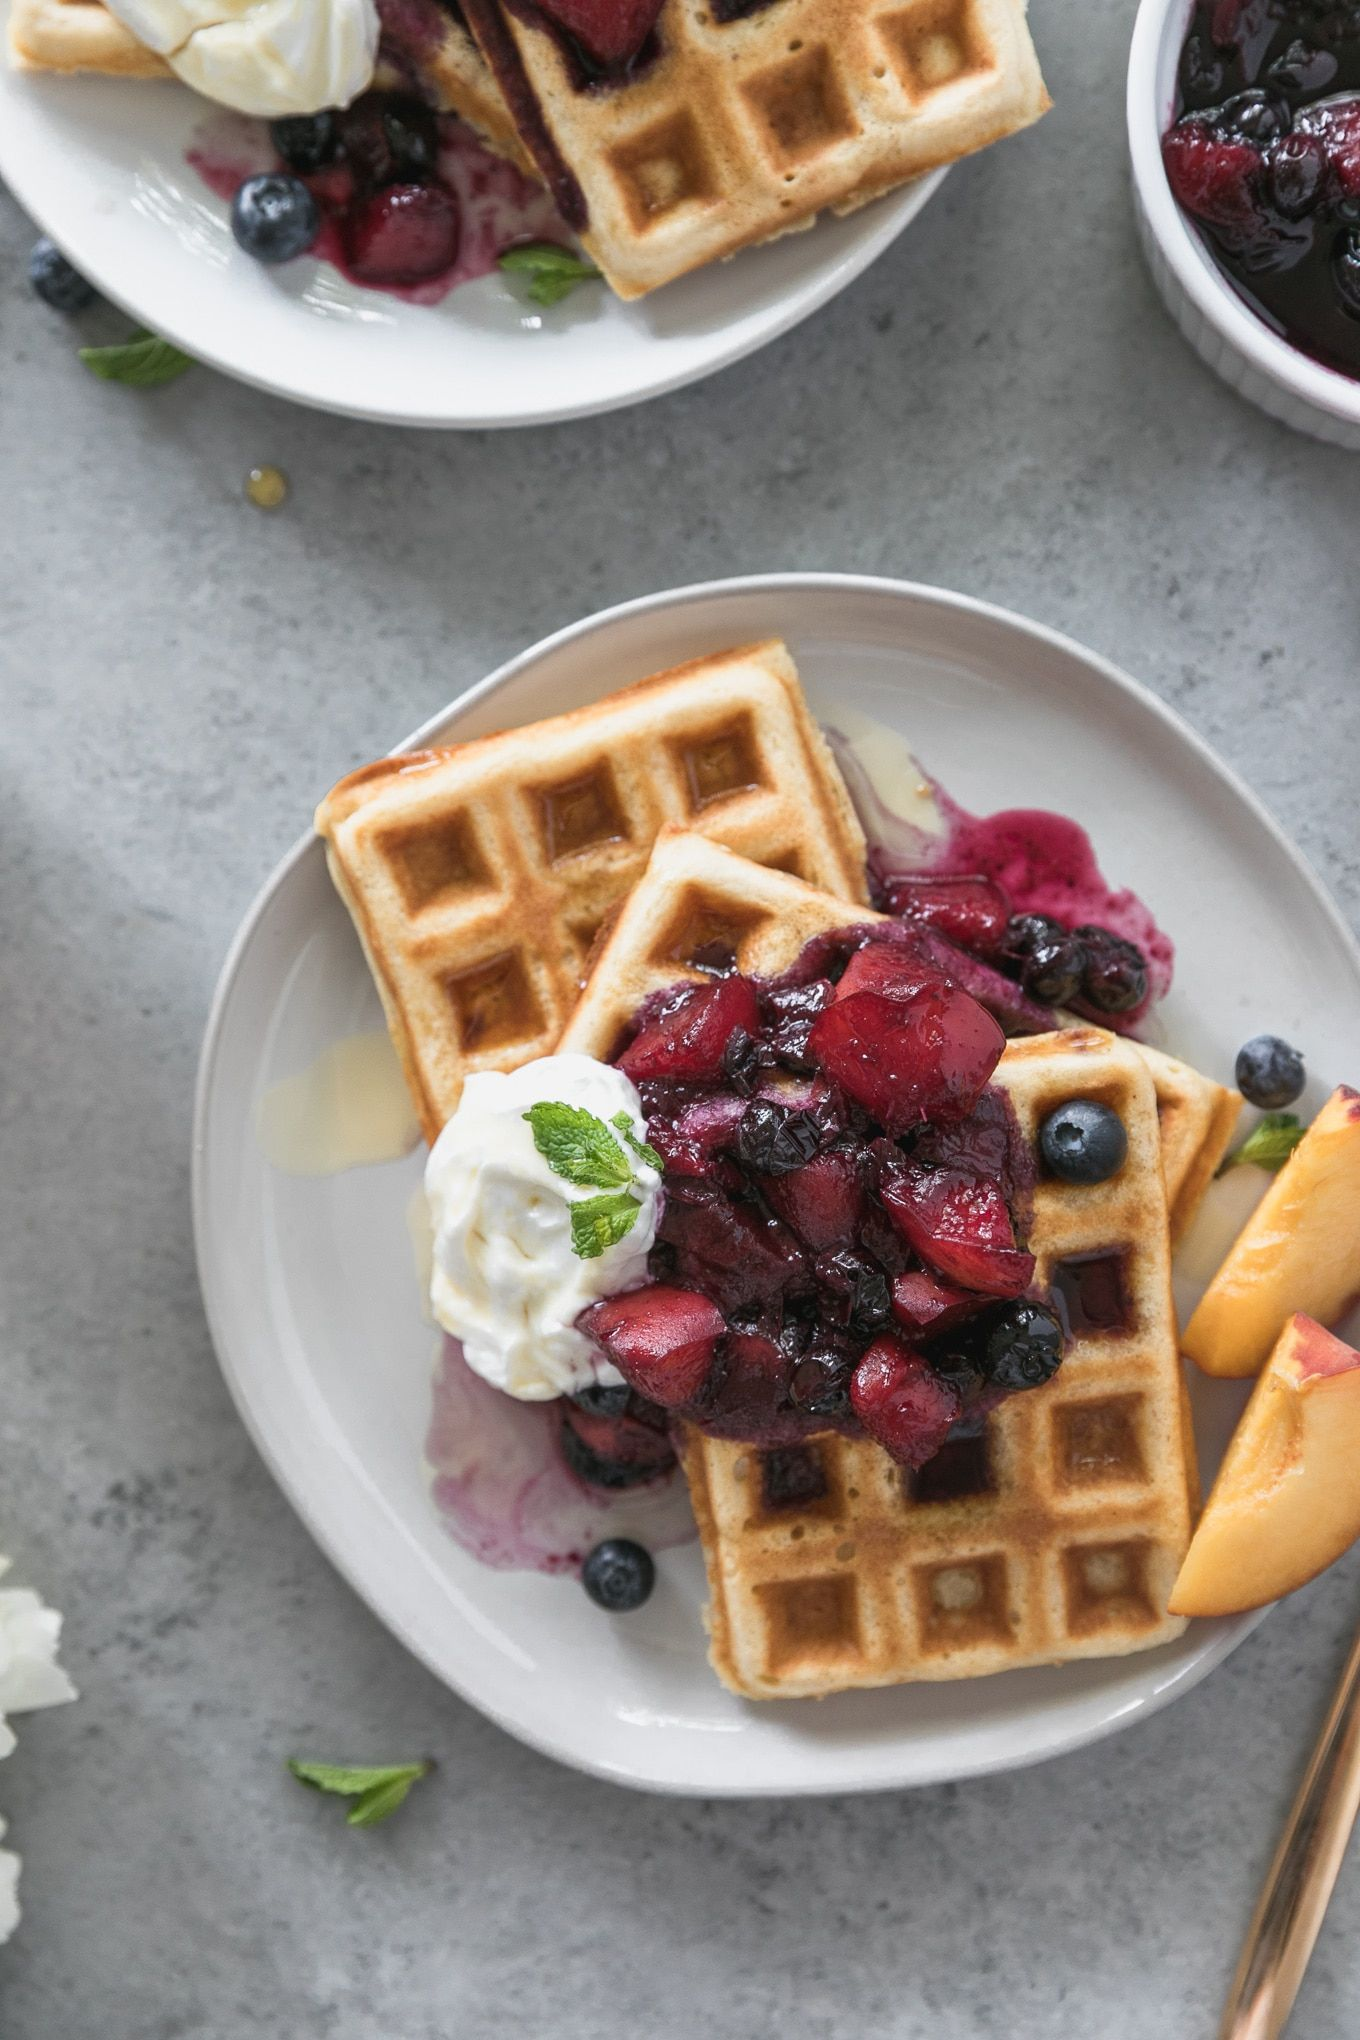 Buttermilk Waffles With Peach Blueberry Compote Recipe Peach Blueberry Blueberry Compote Peach Compote